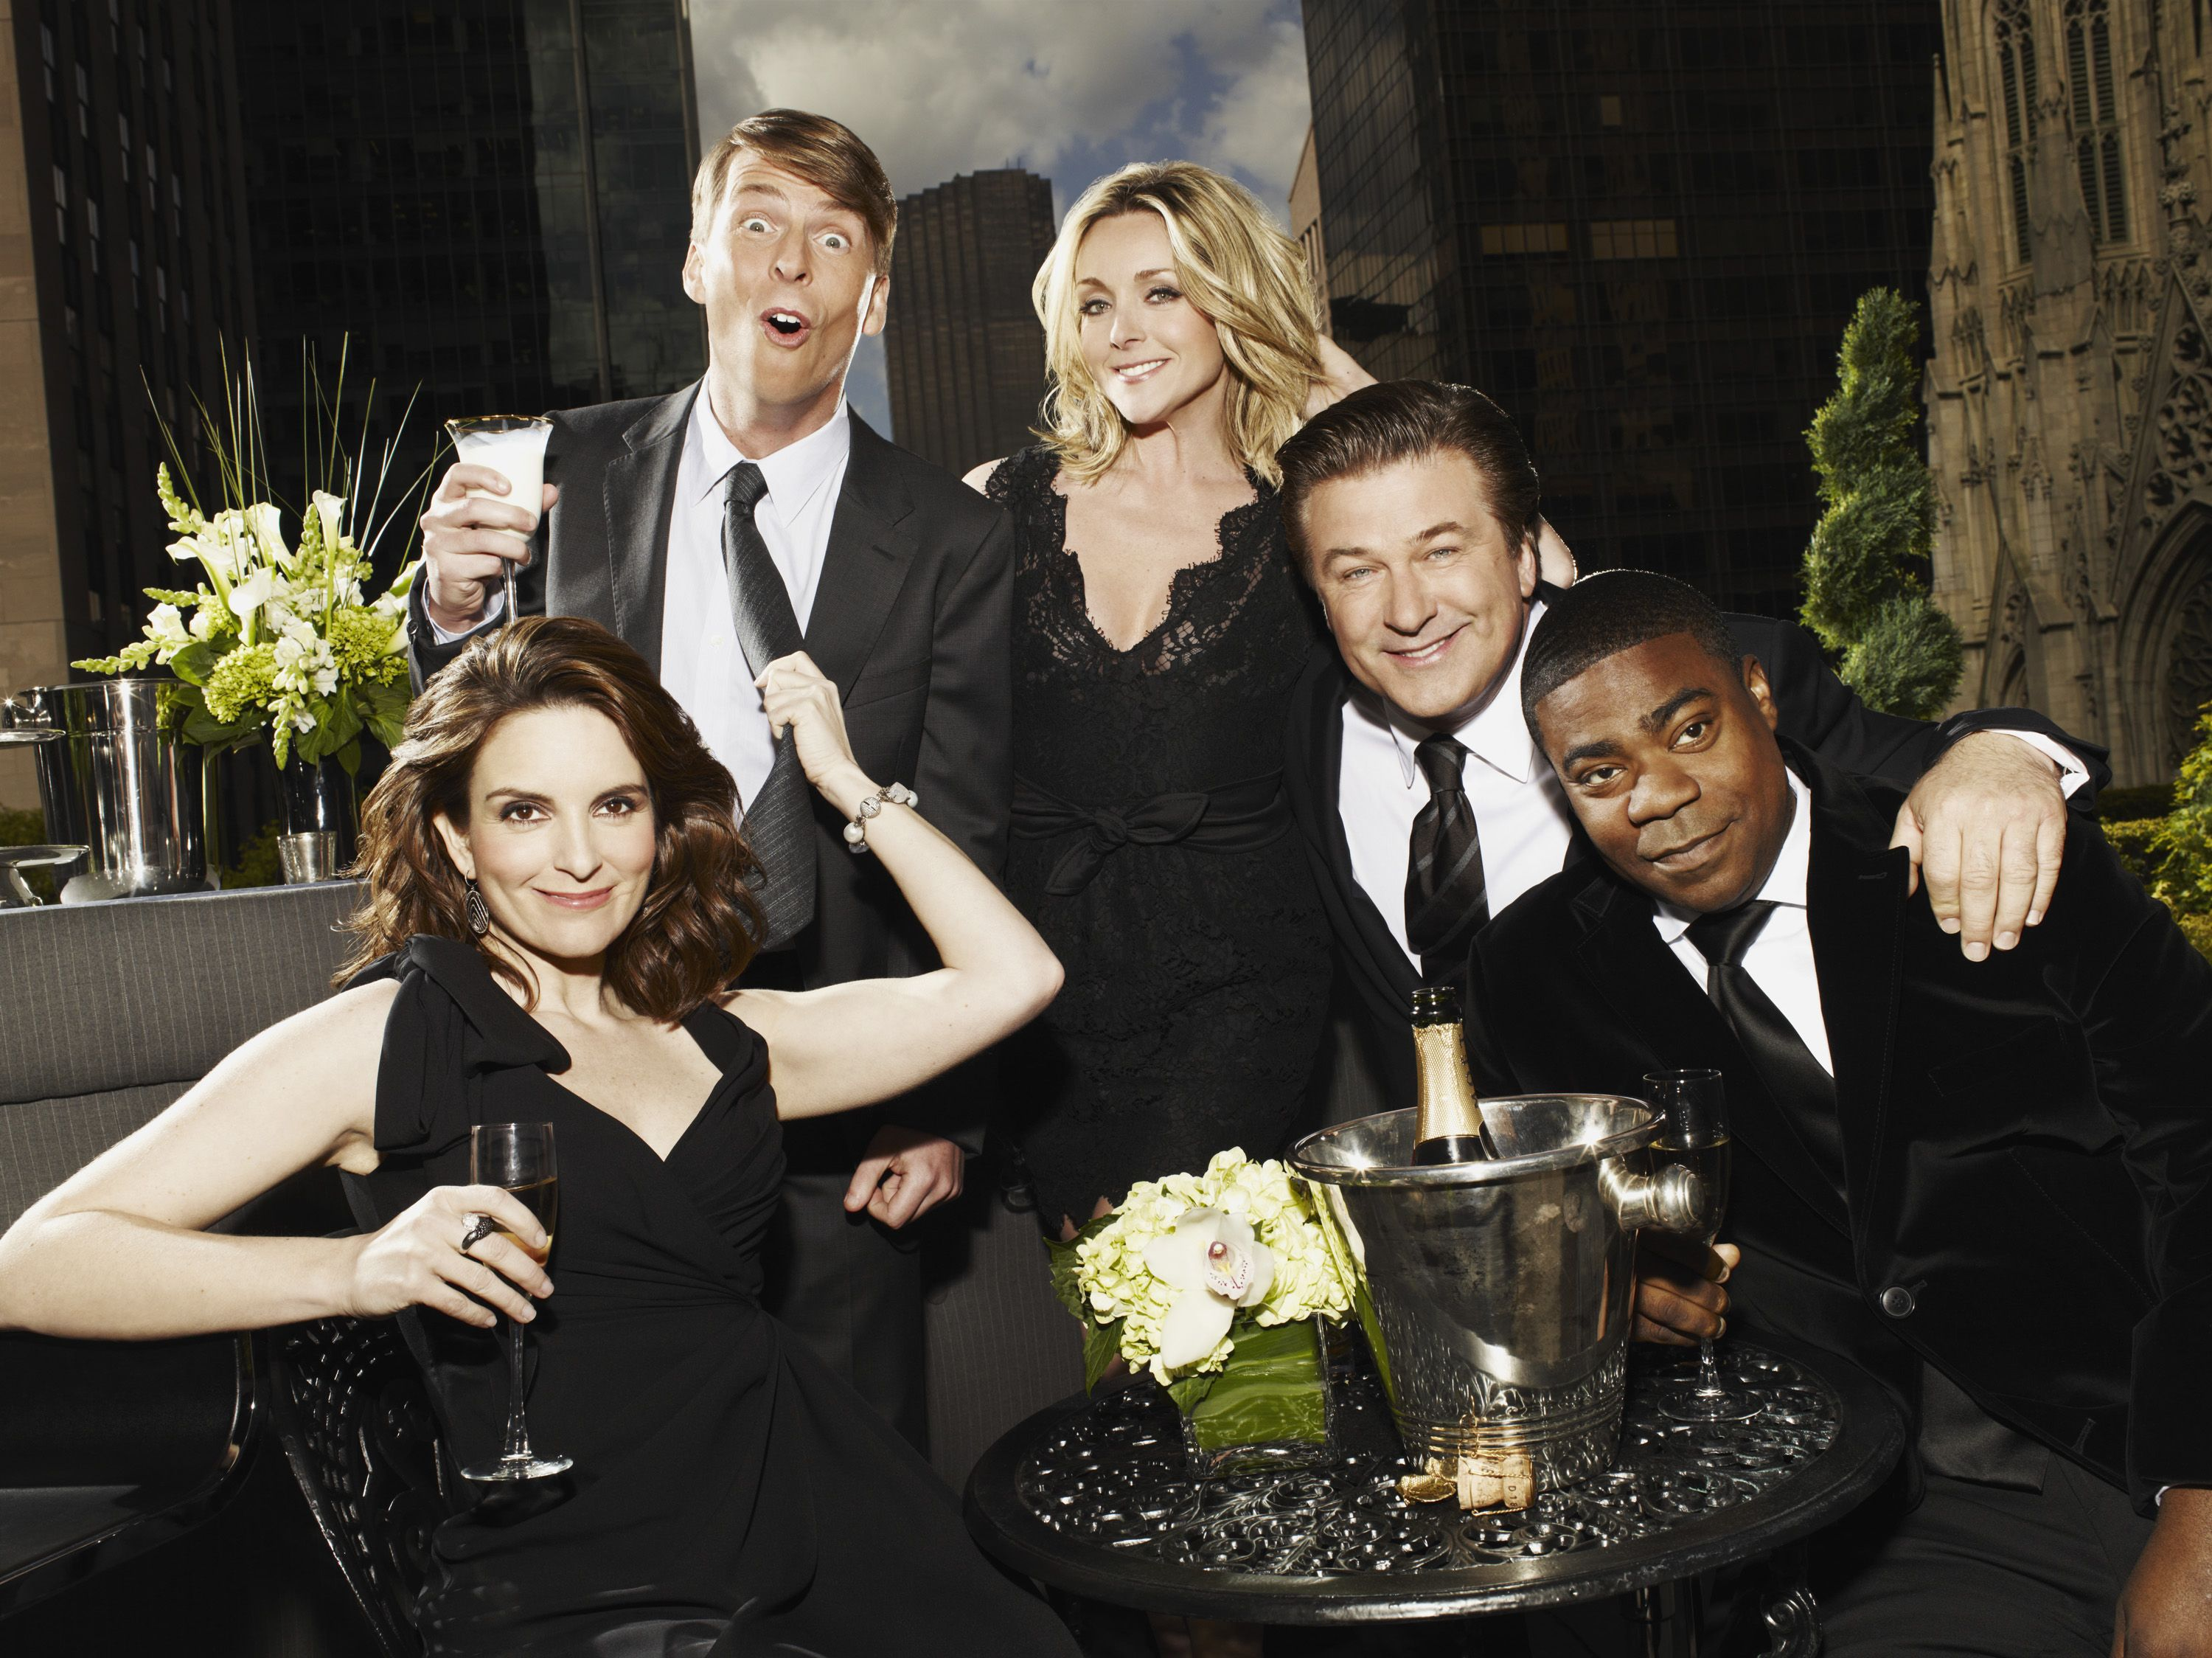 30 Rock Is the Best Show to Fall Asleep to